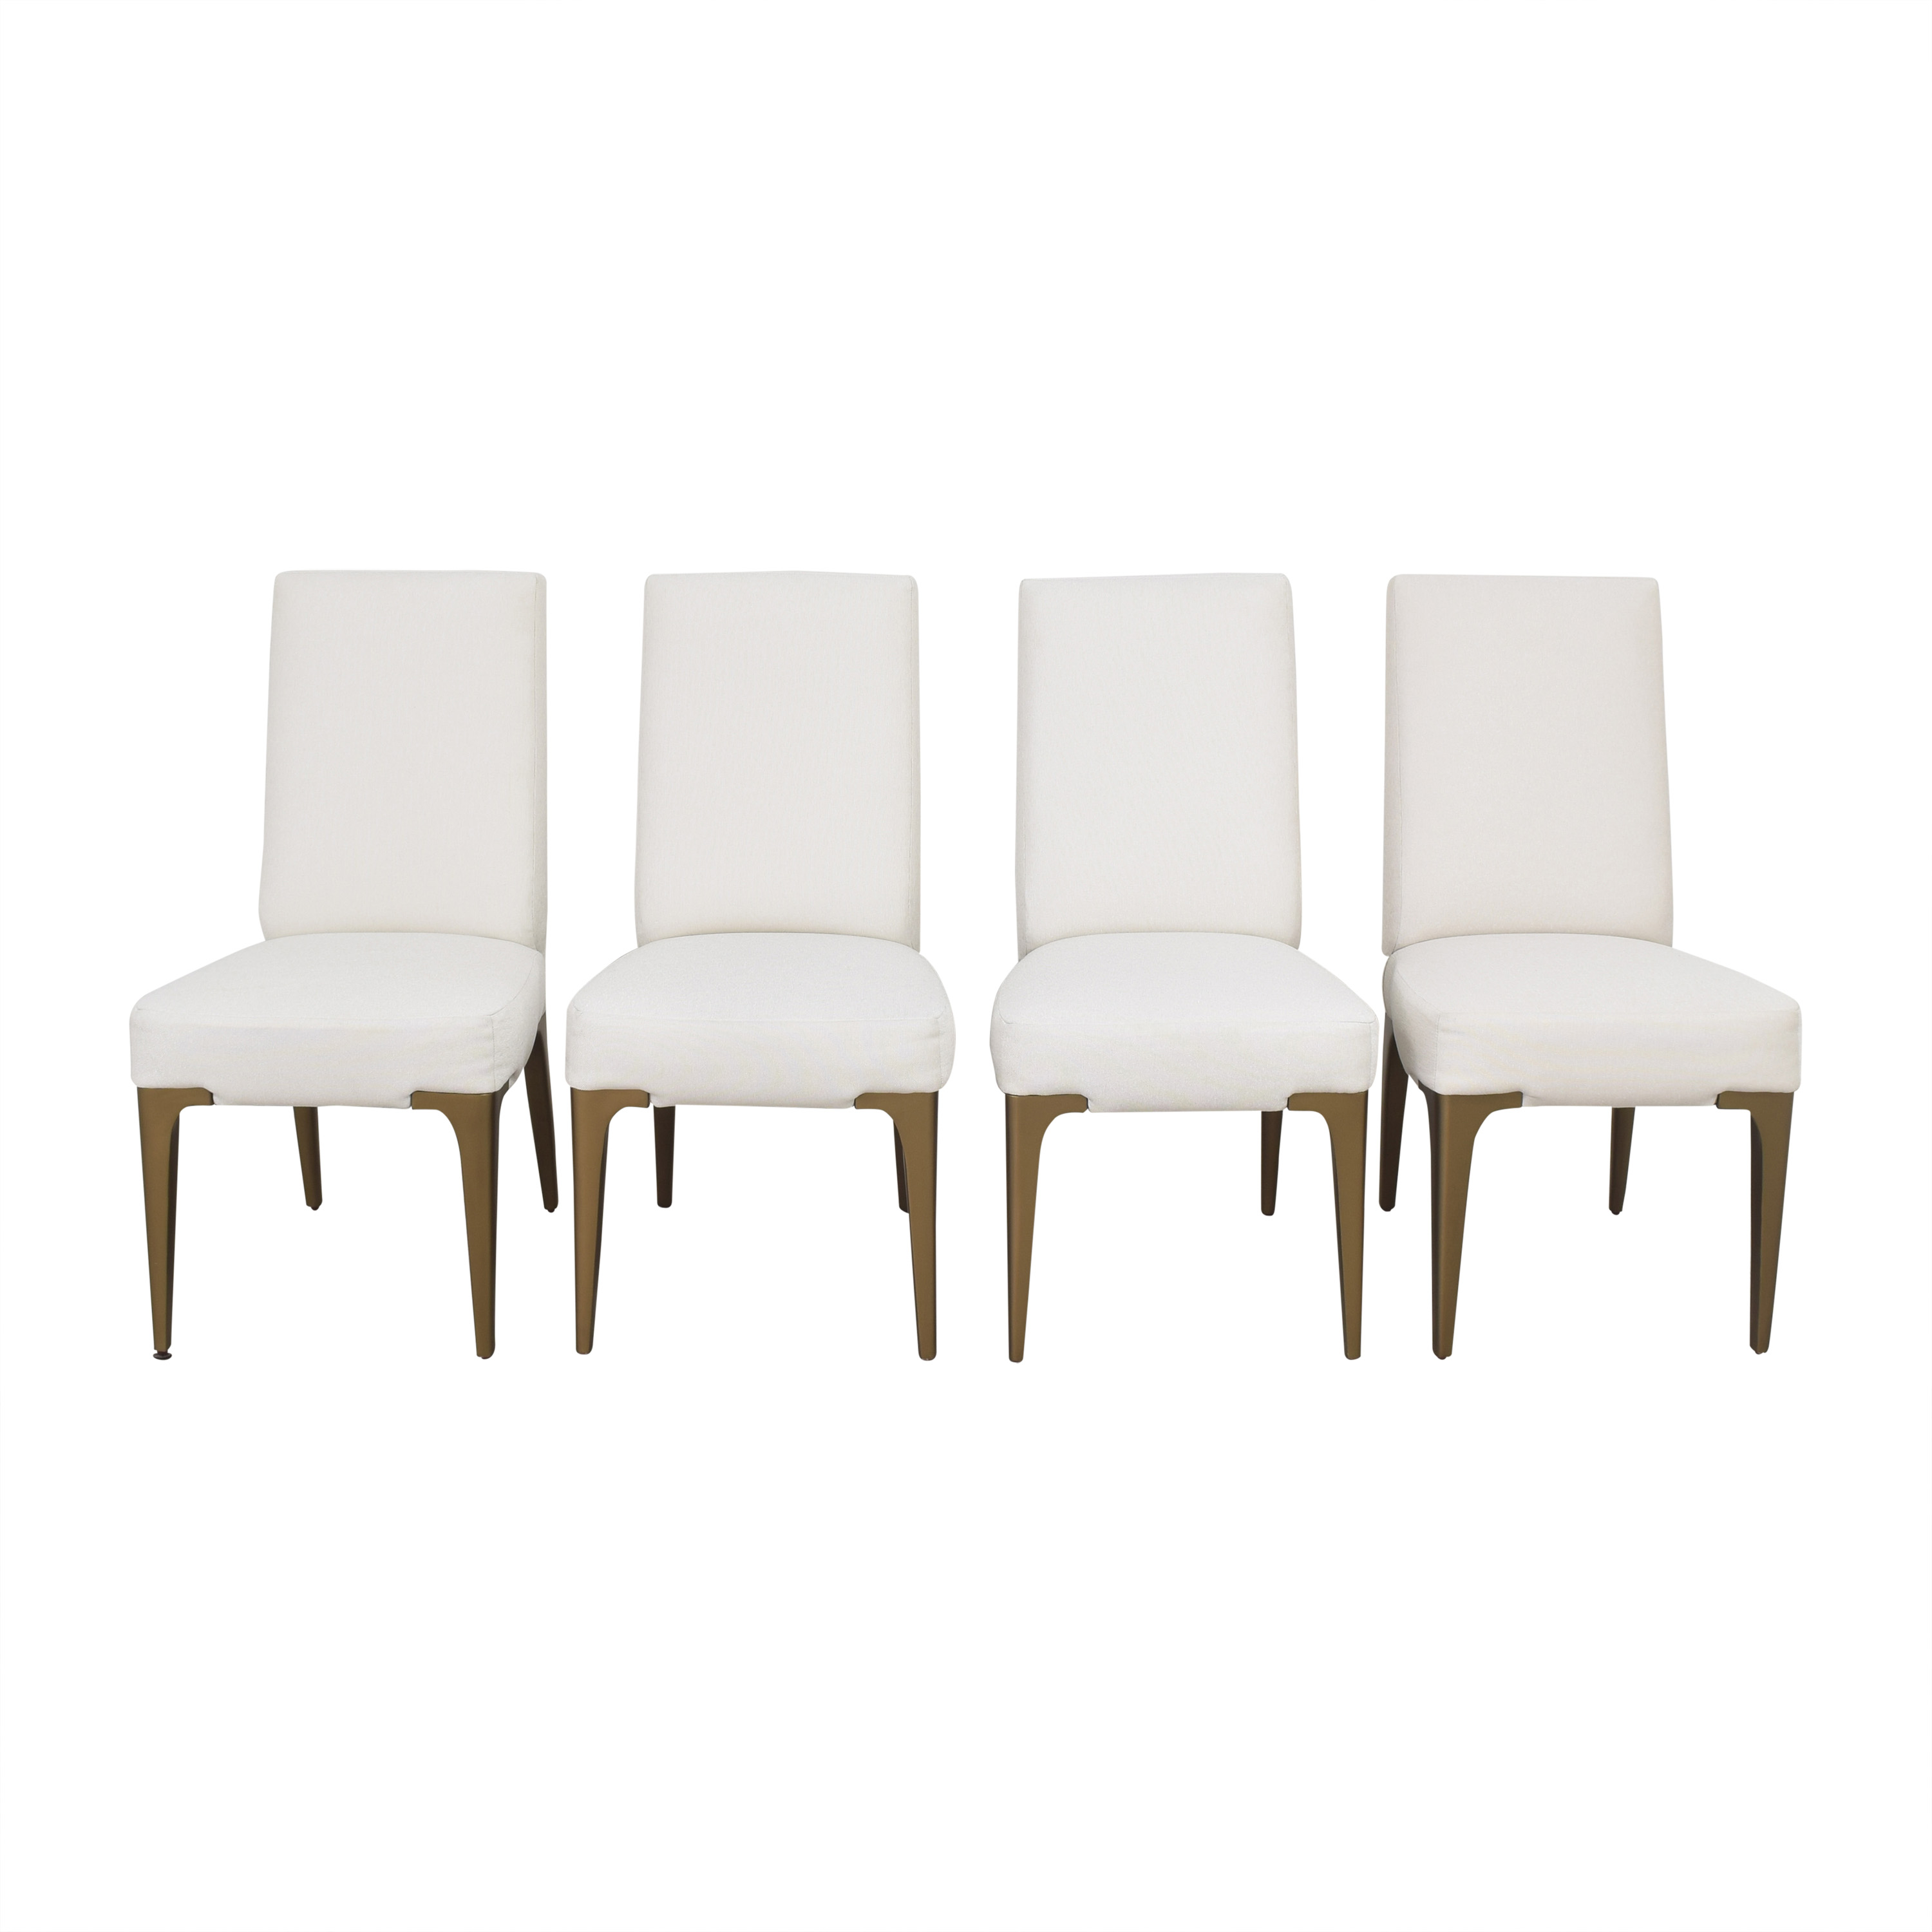 Caracole Caracole Cold Feet Dining Chairs price